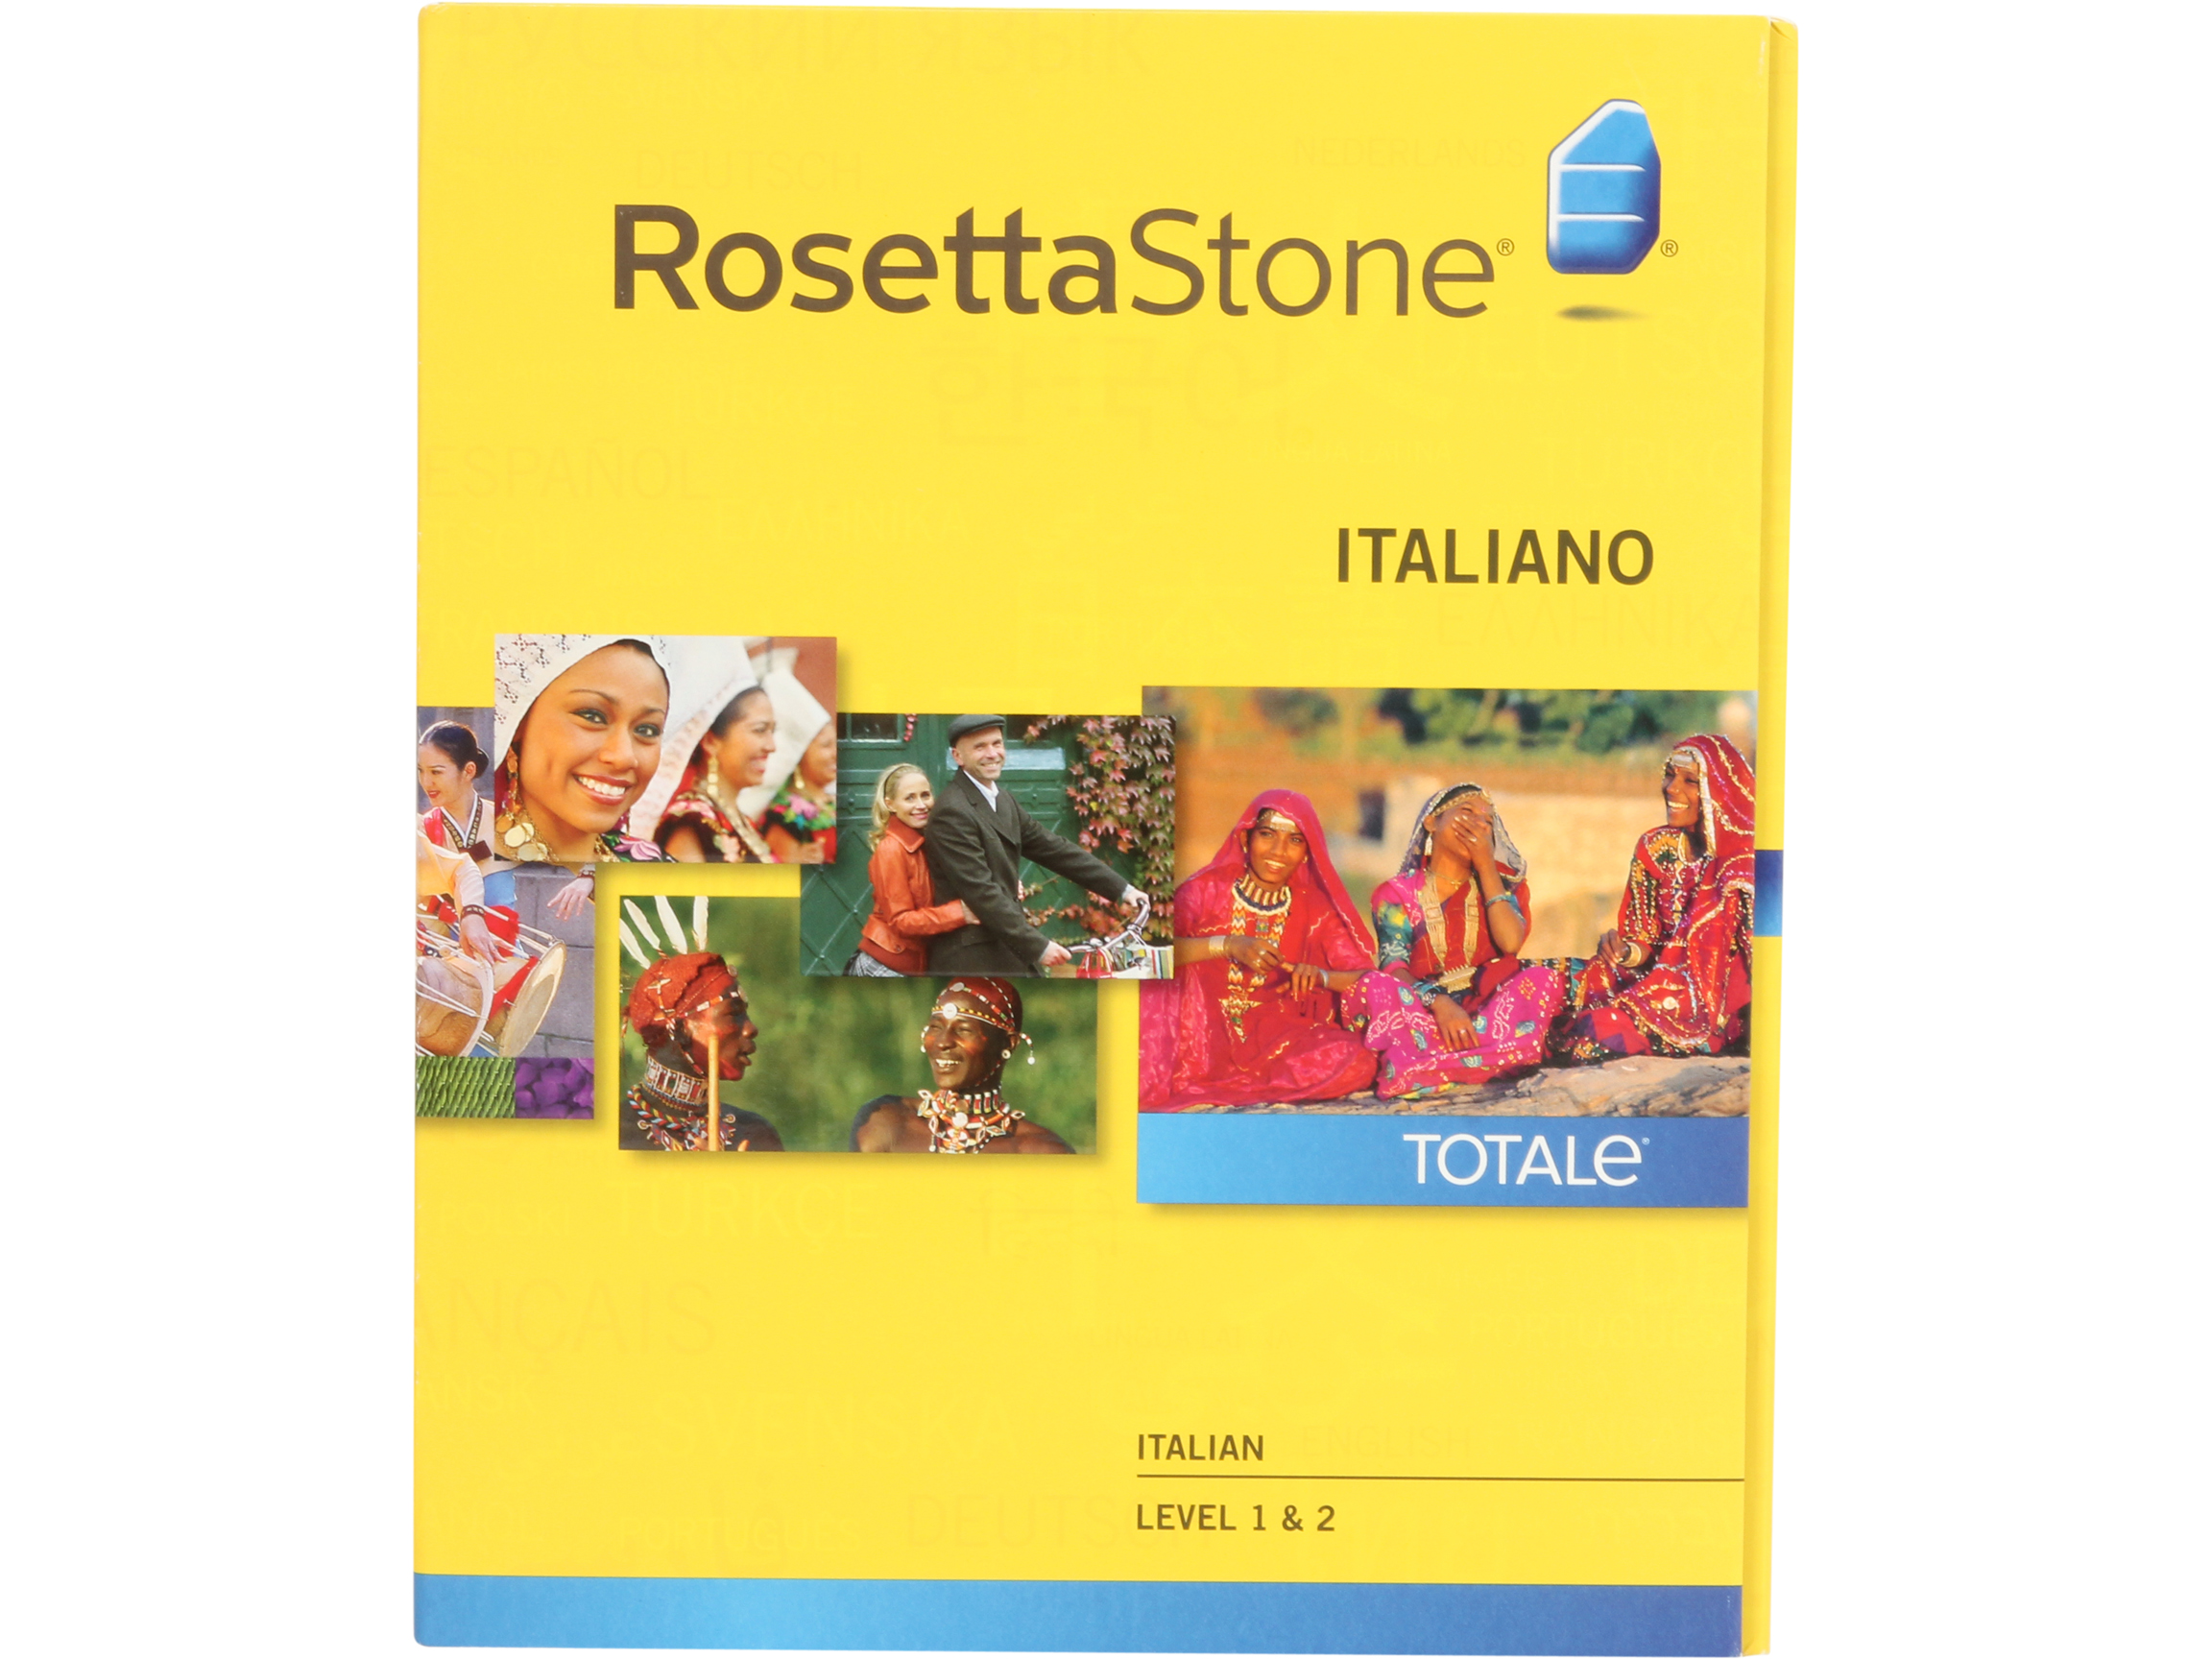 Rosetta stone v2 italian level 1 activation code mac